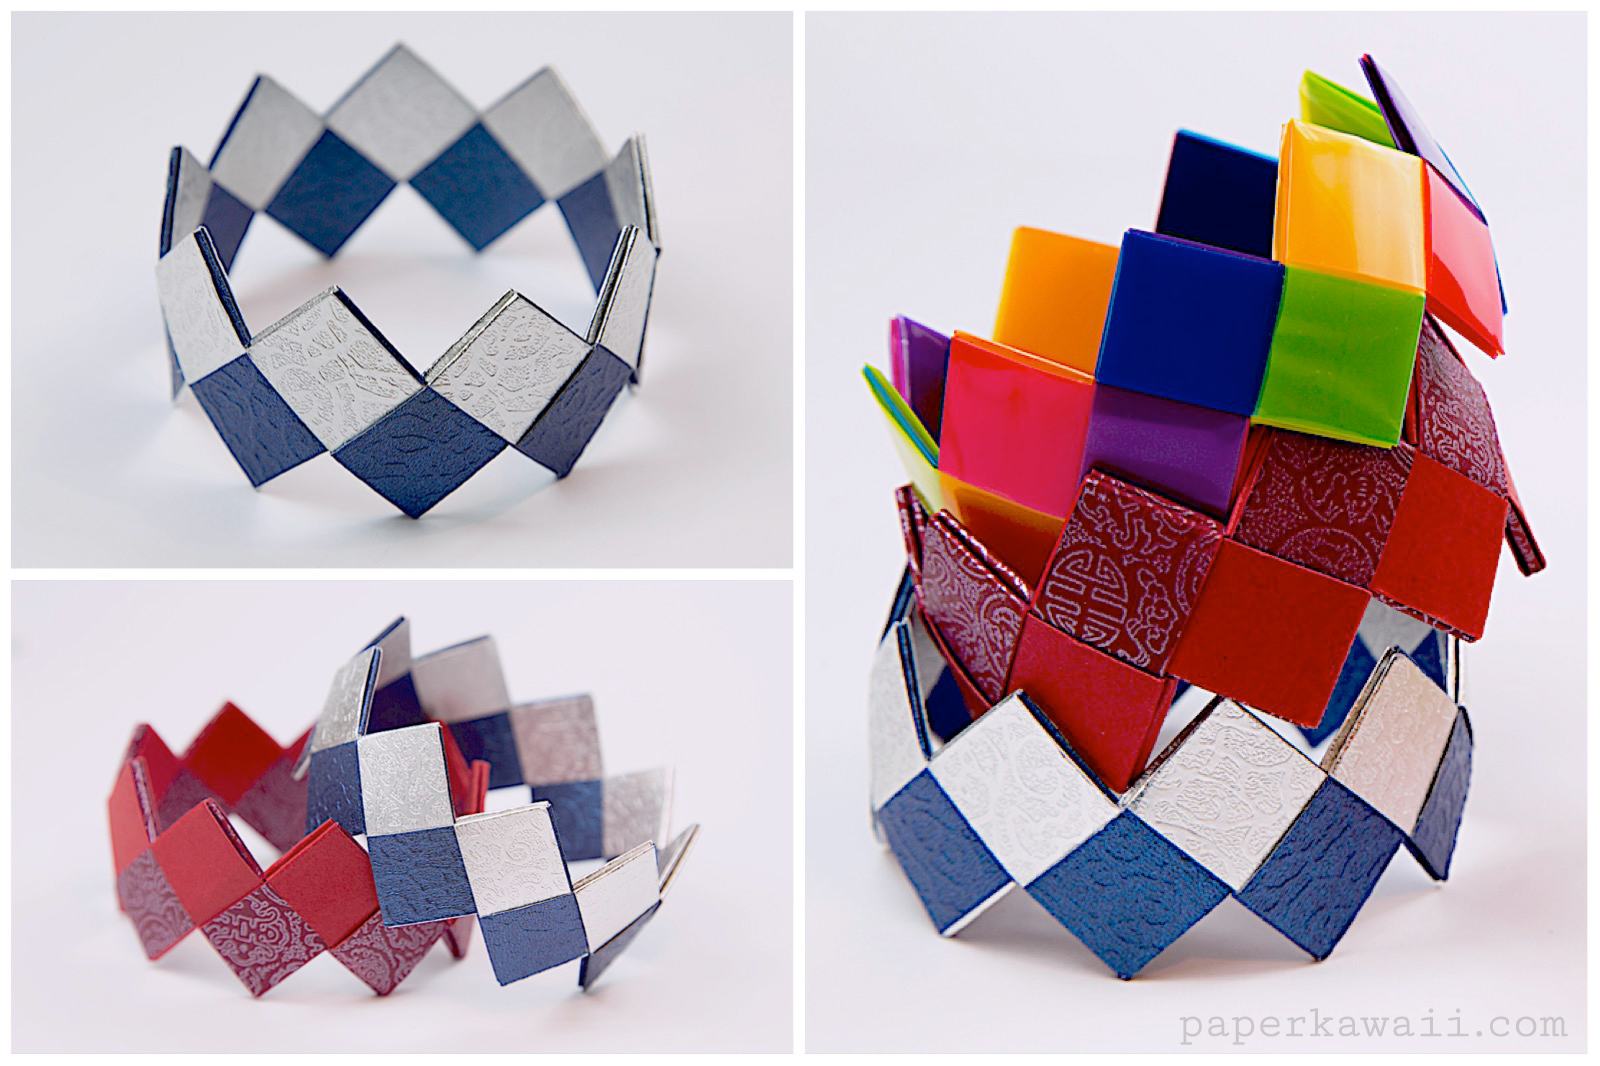 59 Easy Crafts For Kids With Paper And Simple Materials Anyone Can